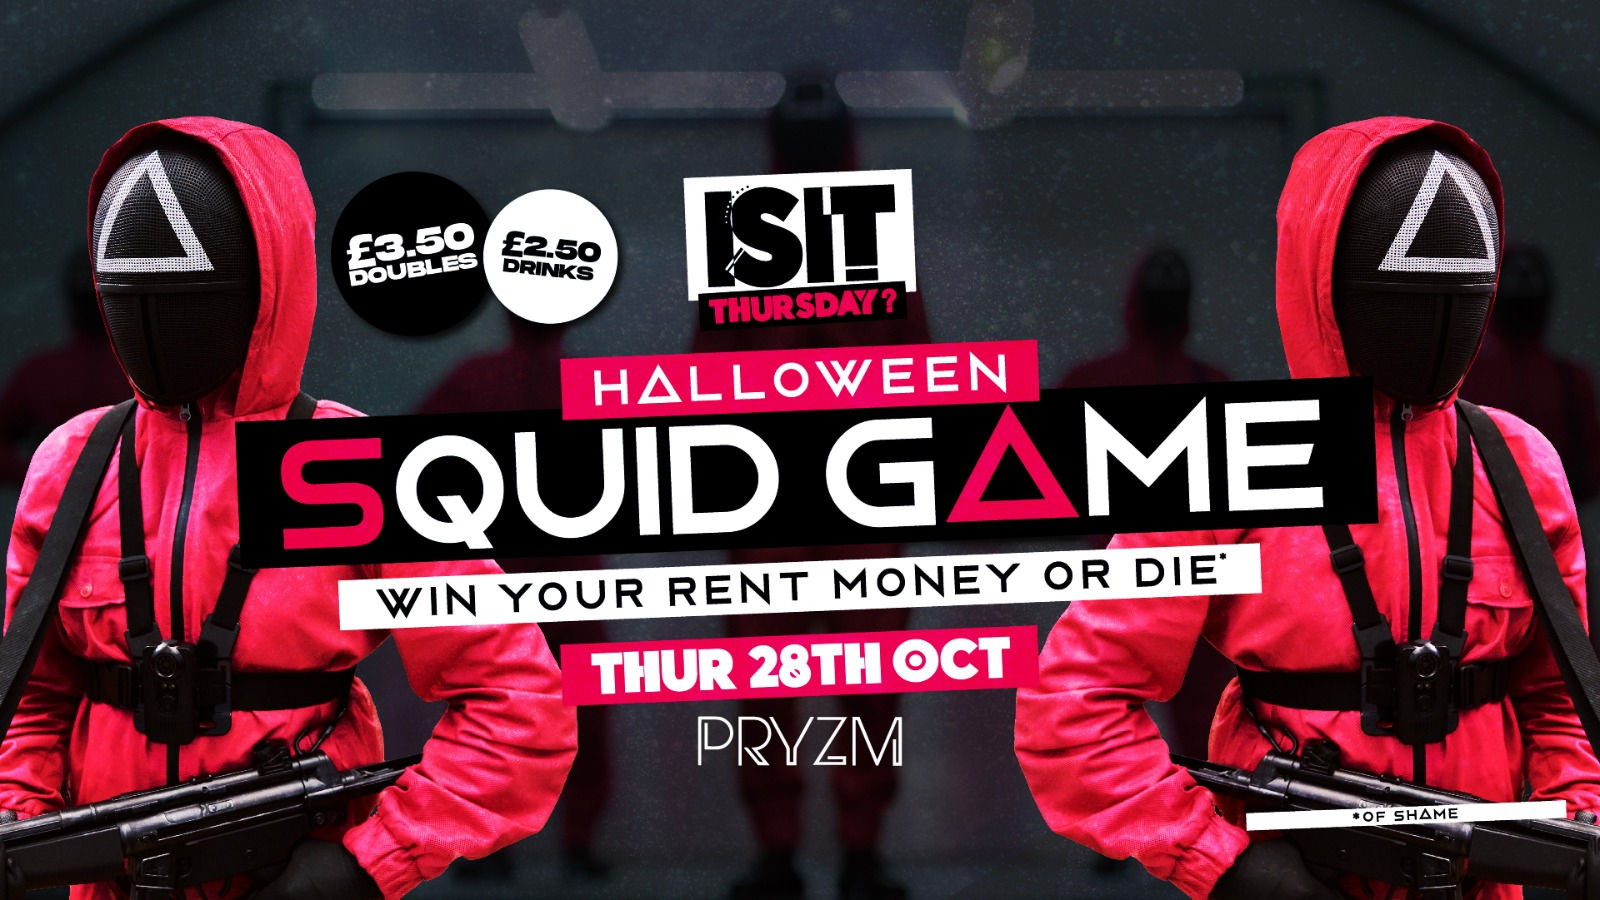 IS IT Thursday? HALLOWEEN SQUID GAME – Win your Rent or DIE! Portsmouth's Biggest Student Night!